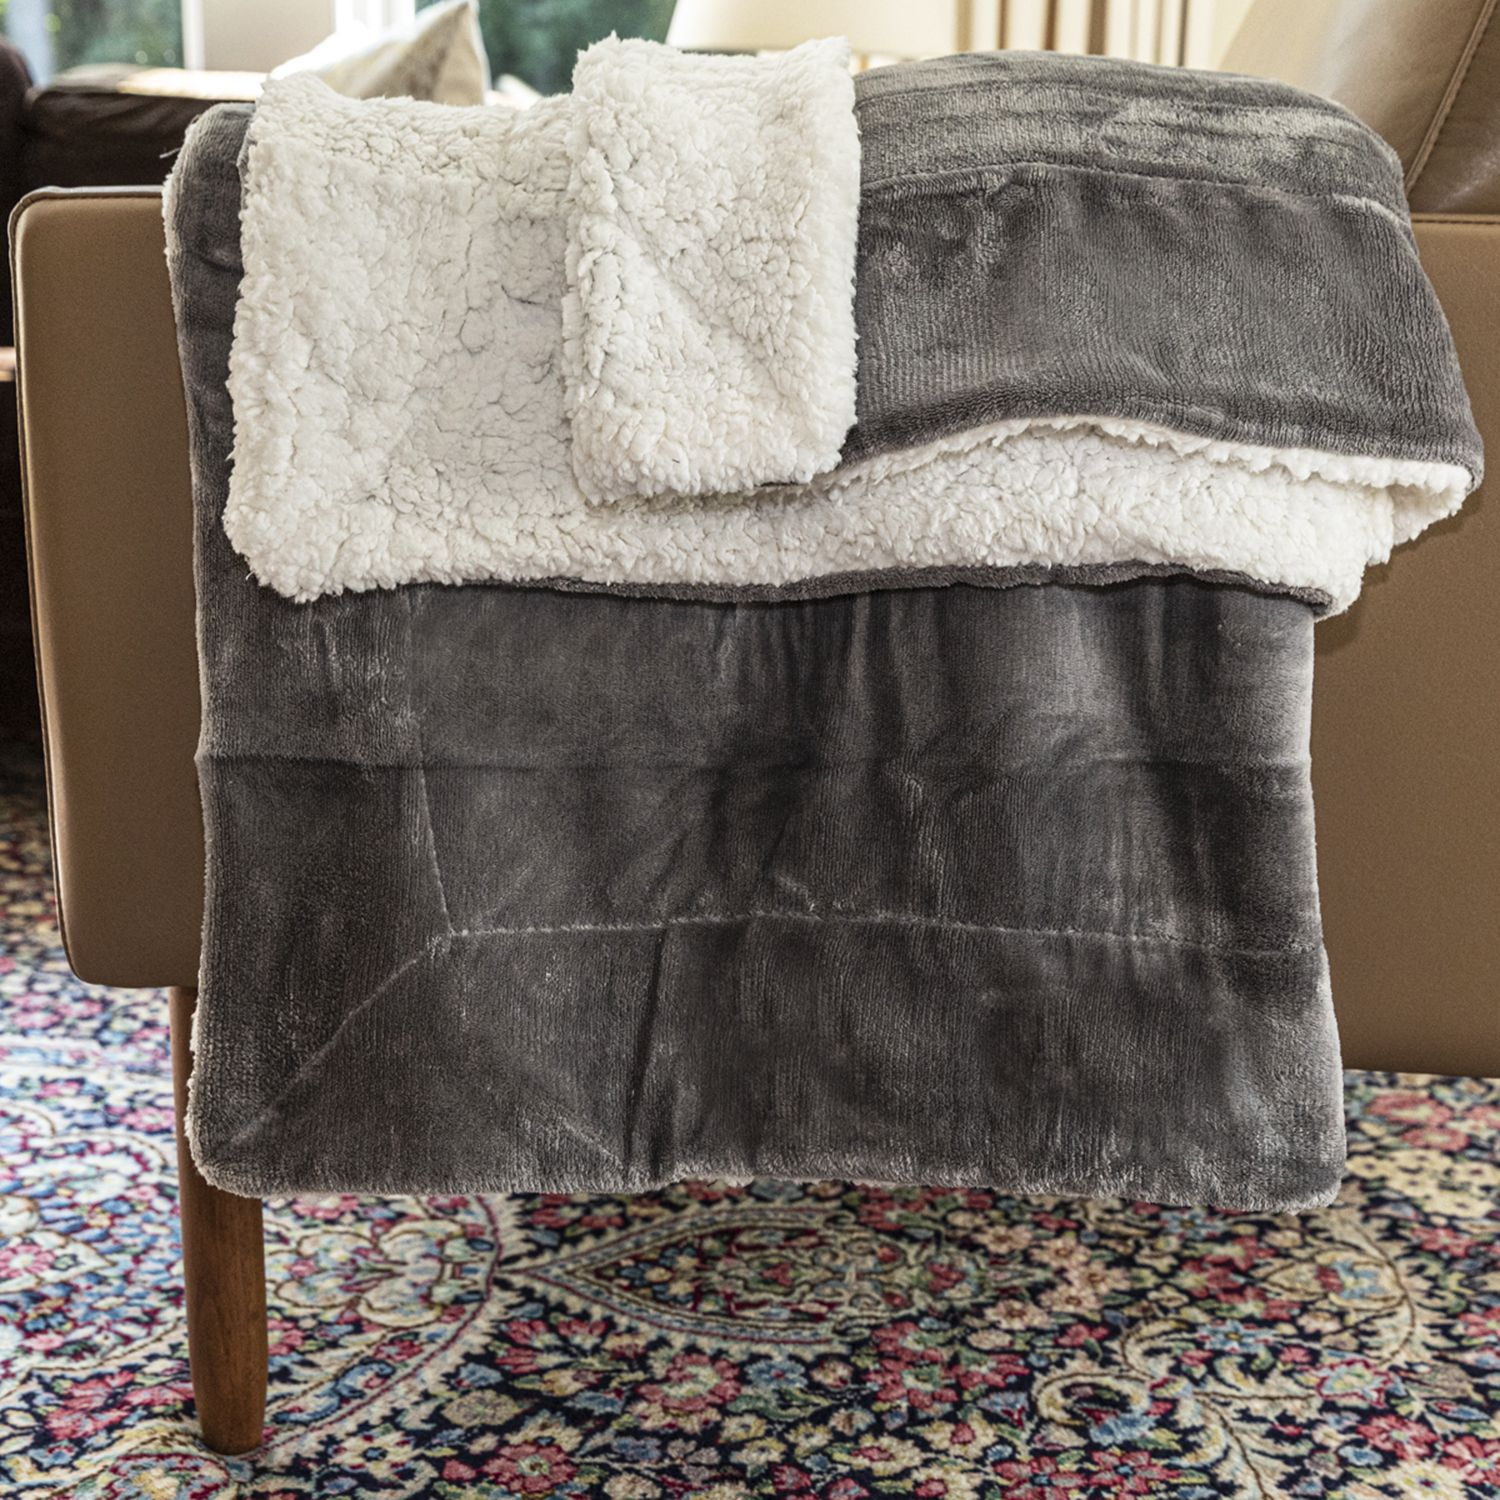 Bedsure Sherpa Fleece Blanket Review Ultra Soft And Budget Friendly